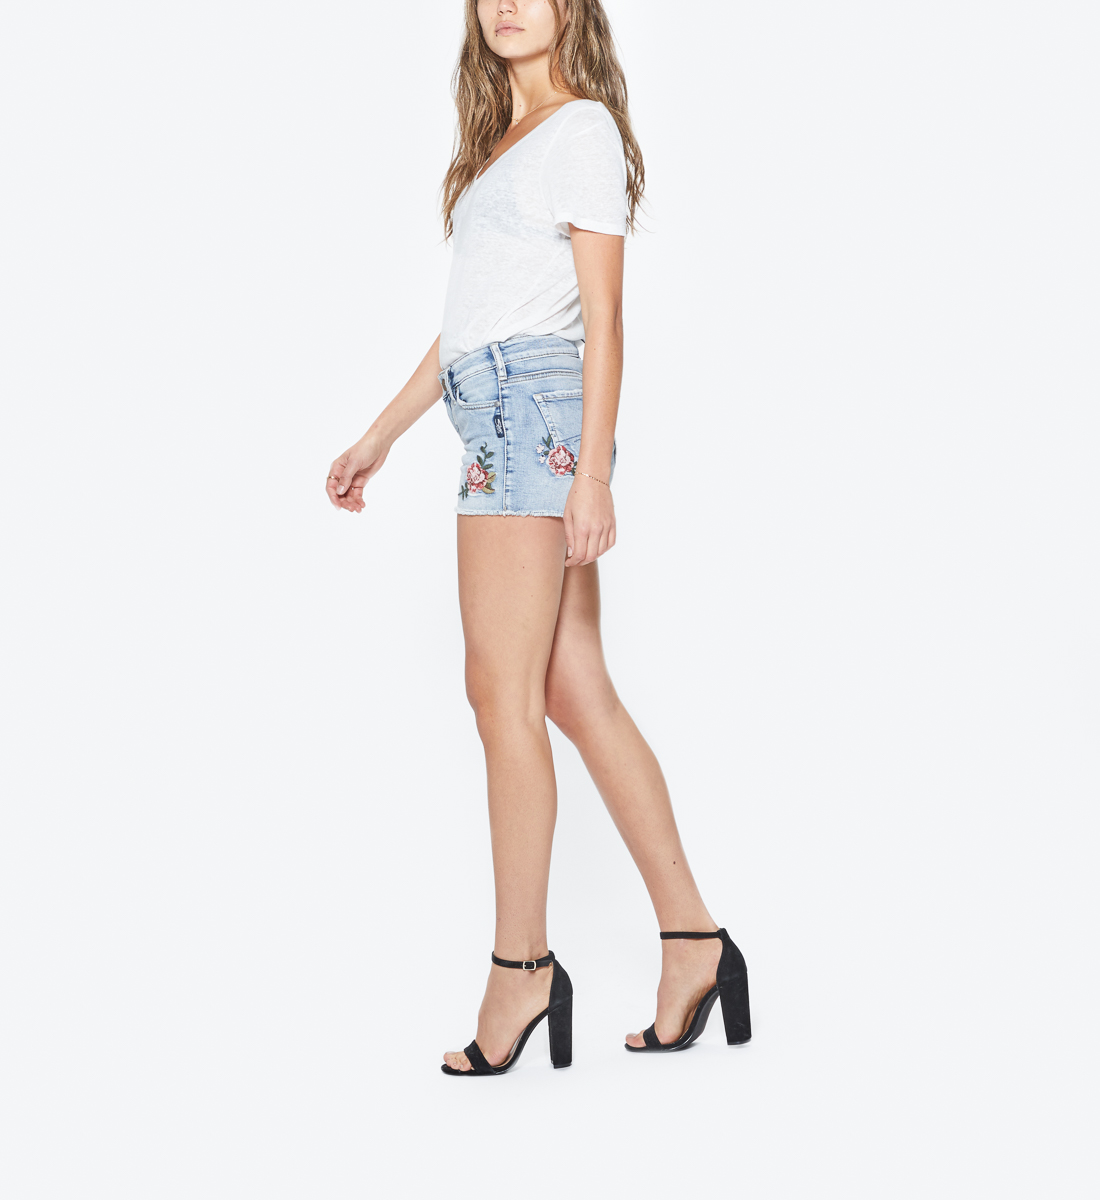 Aiko Light Wash Embroidered Short, , hi-res